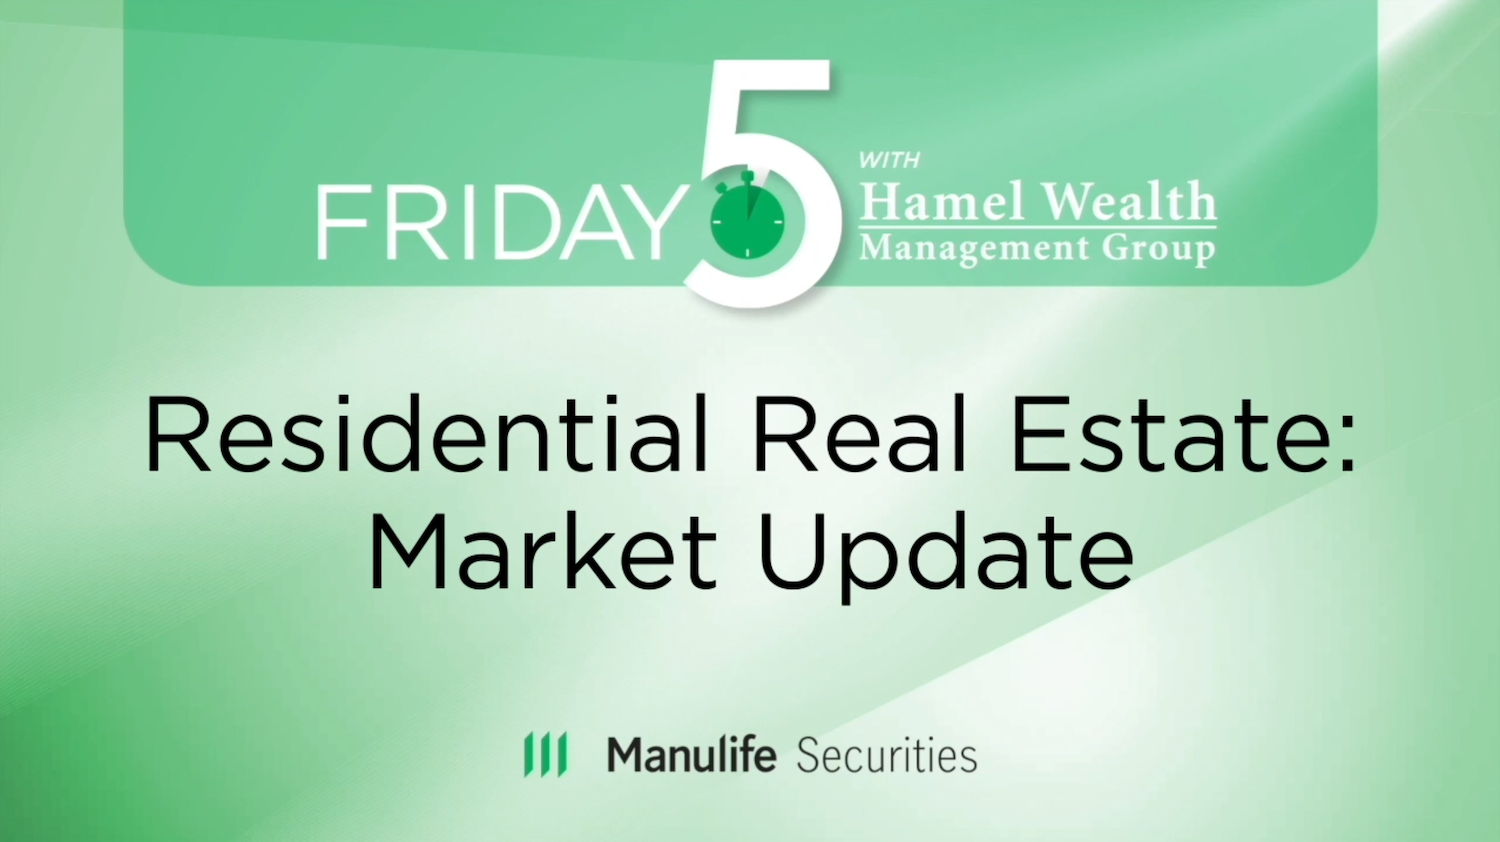 Residential Real Estate:  Market Update Thumbnail